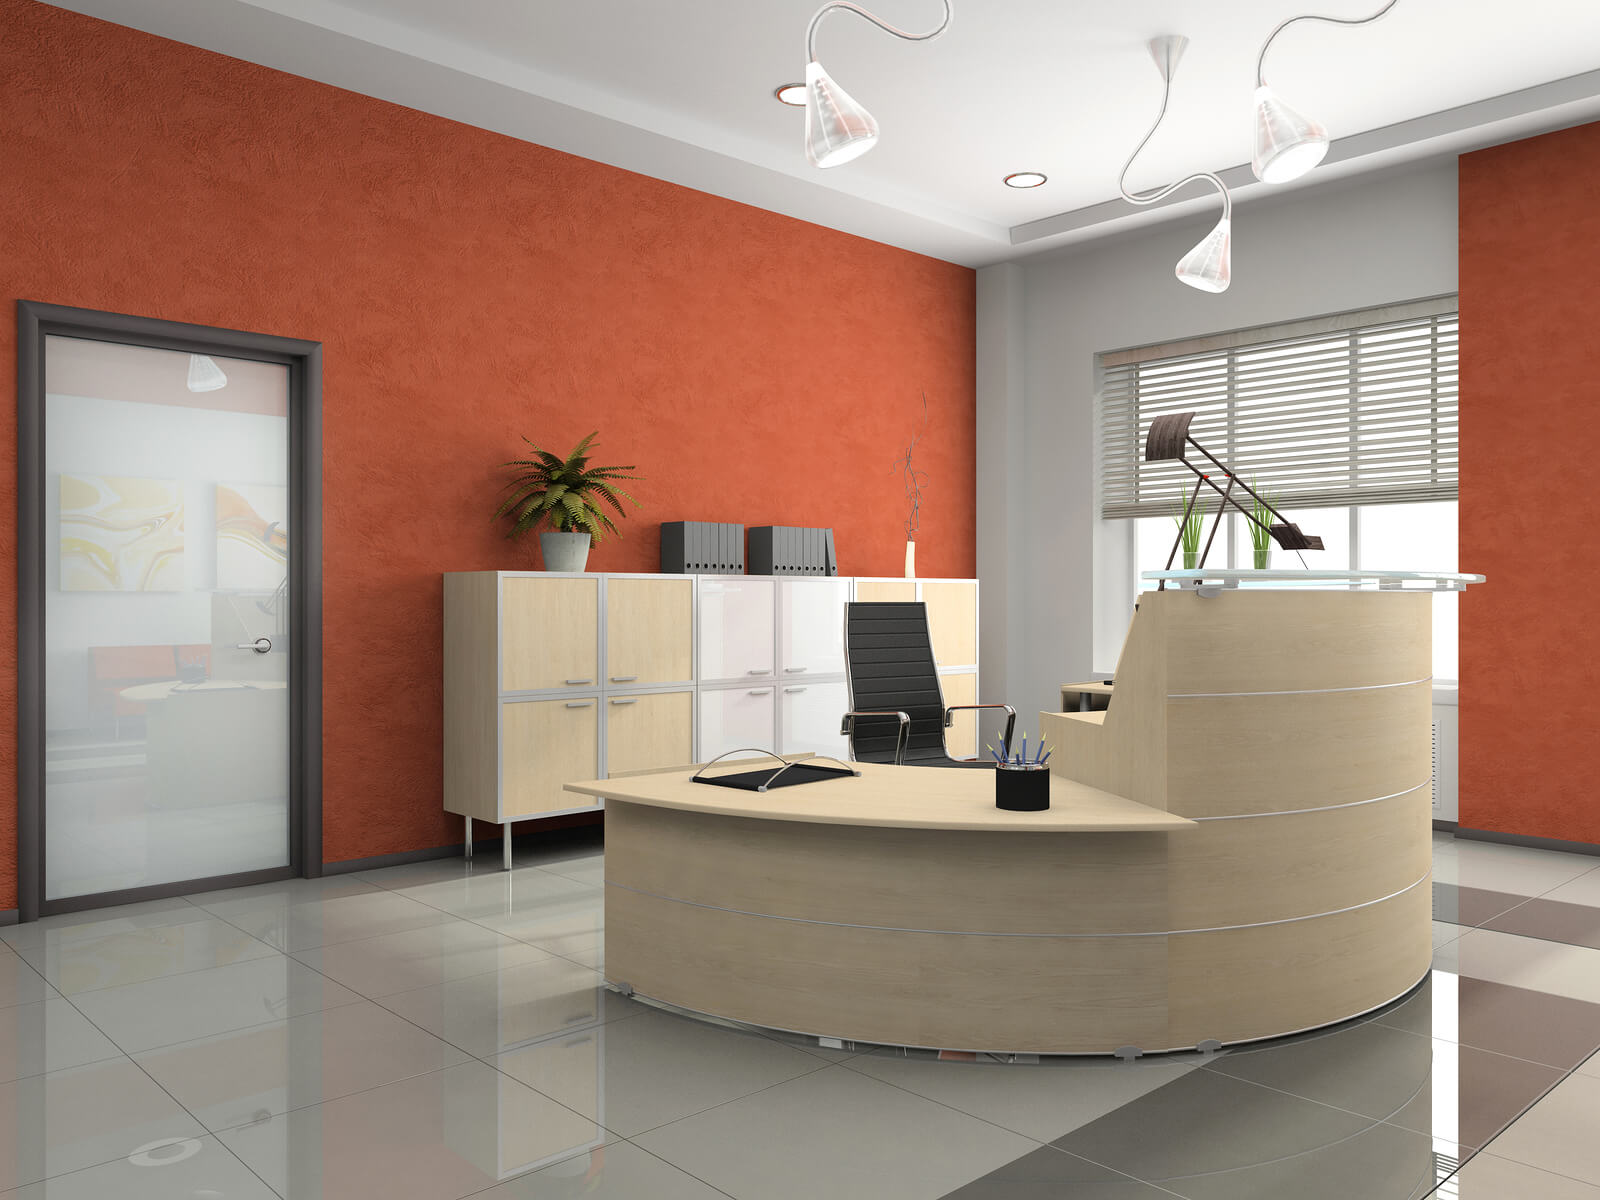 How to Better the Reception Area of your Office Interior Design?